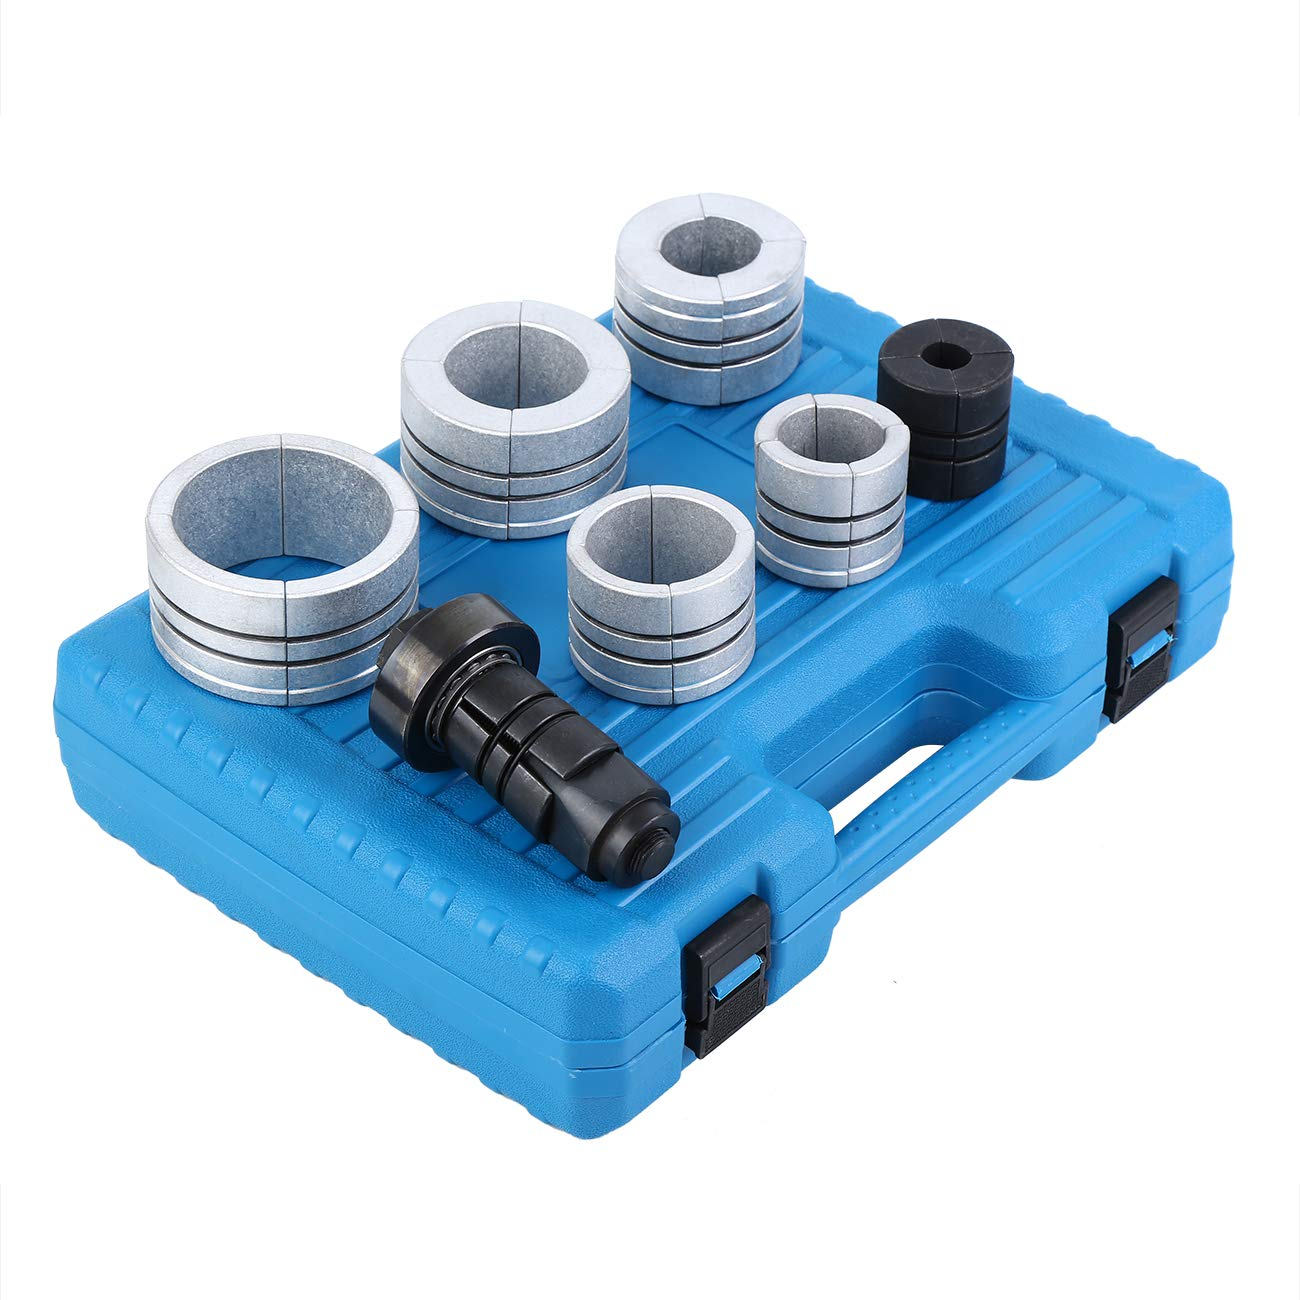 28mm Exhaust Pipe Stretcher Expander Tool Kit with Blue Storage Case Ambienceo Pipe Stretcher Kit